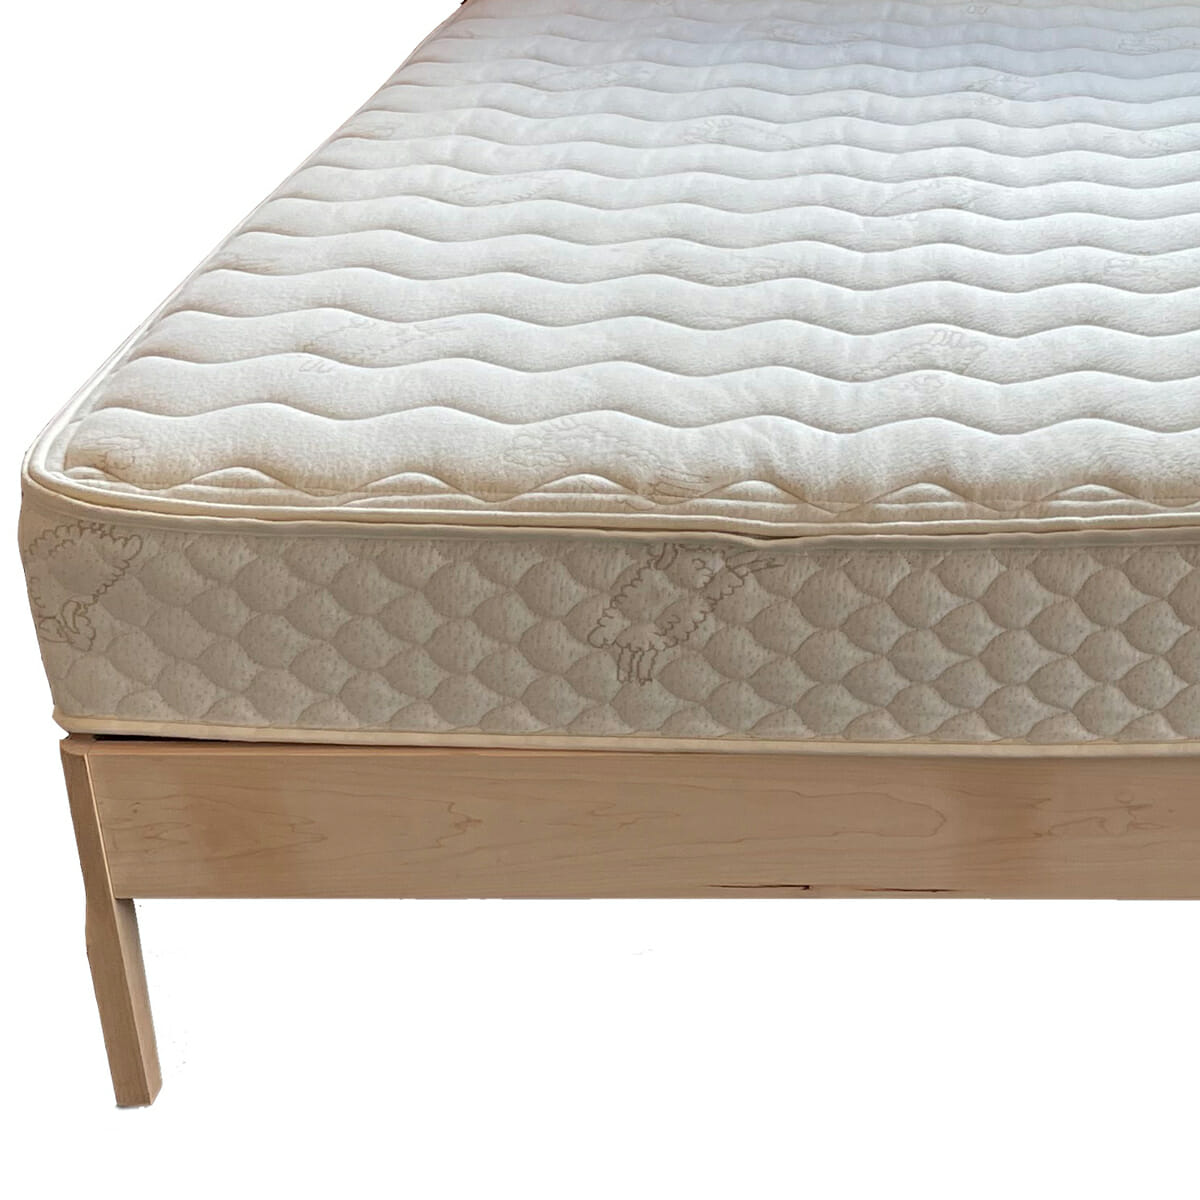 Maple Platform Bed Unfinished with Select Mattress